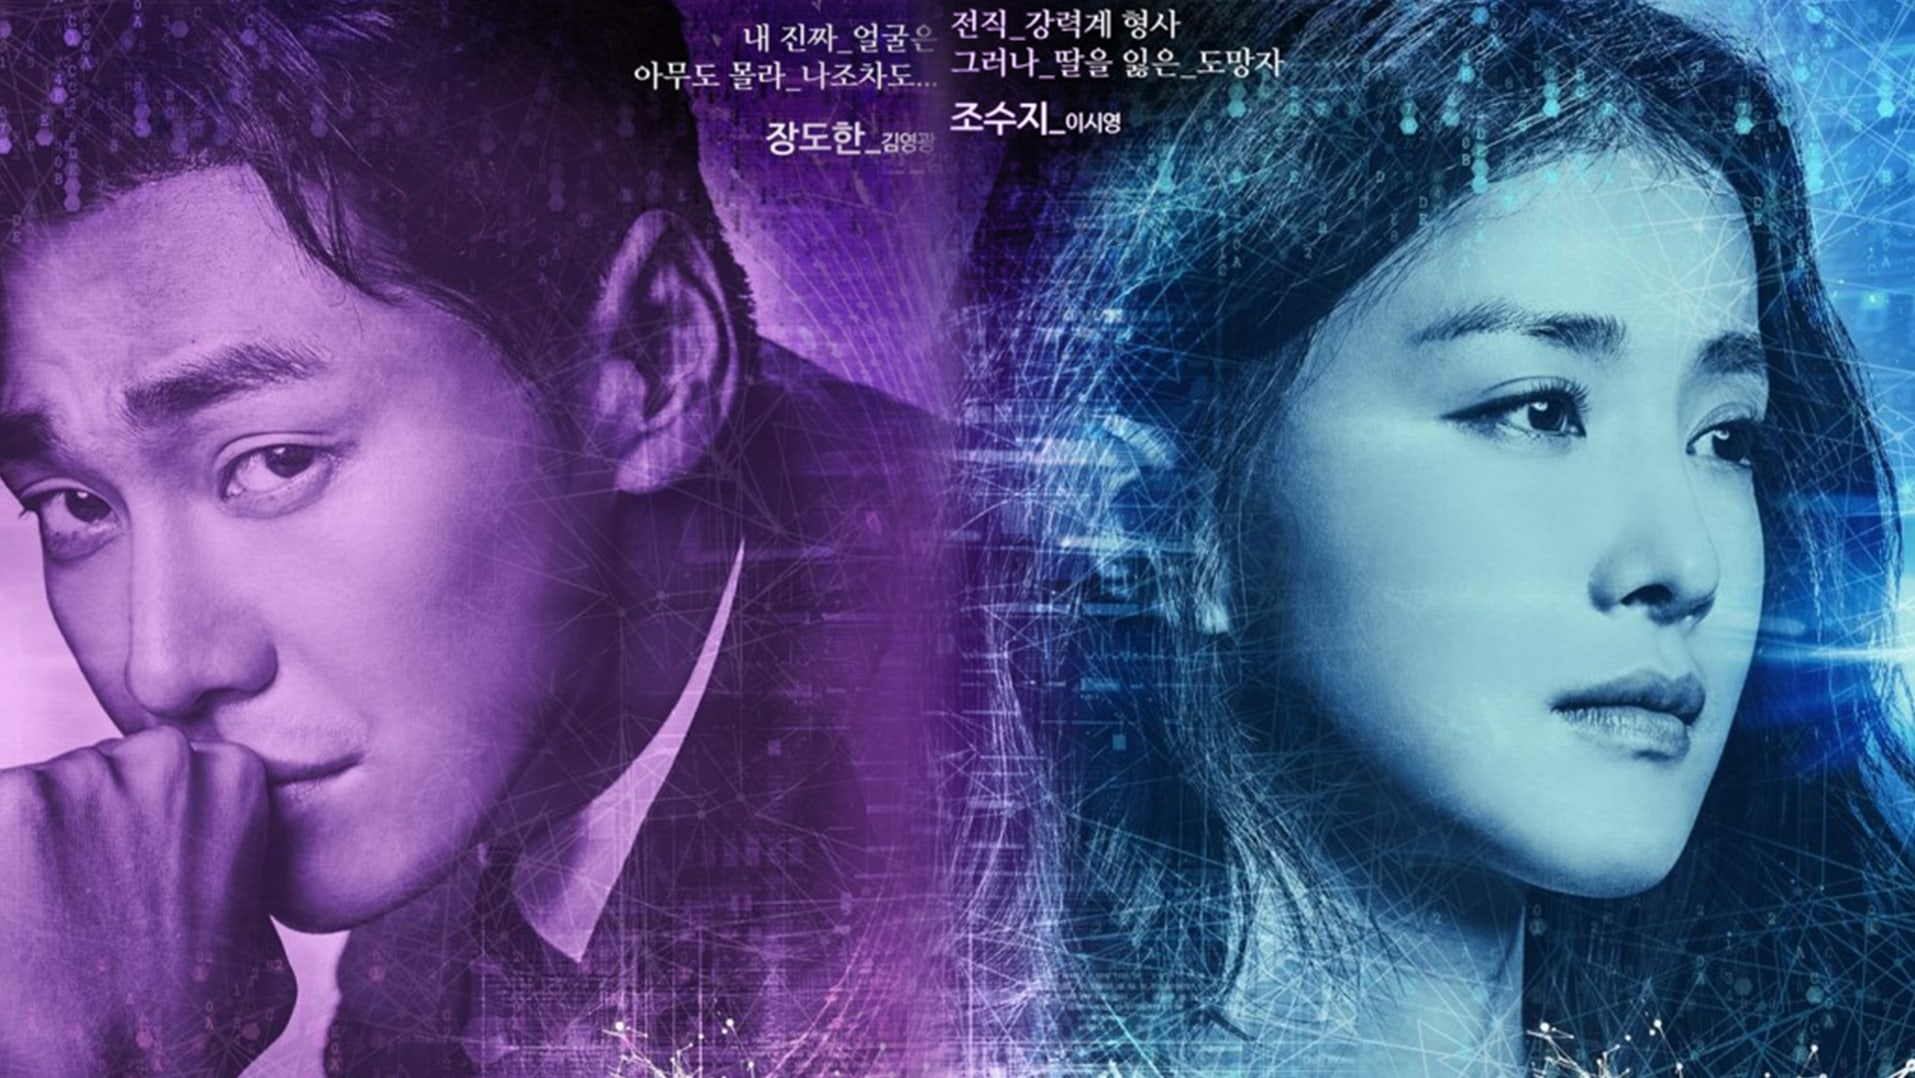 Lookout Releases Intriguing Character Posters For Lee Si Young, Kim Young Kwang, And More